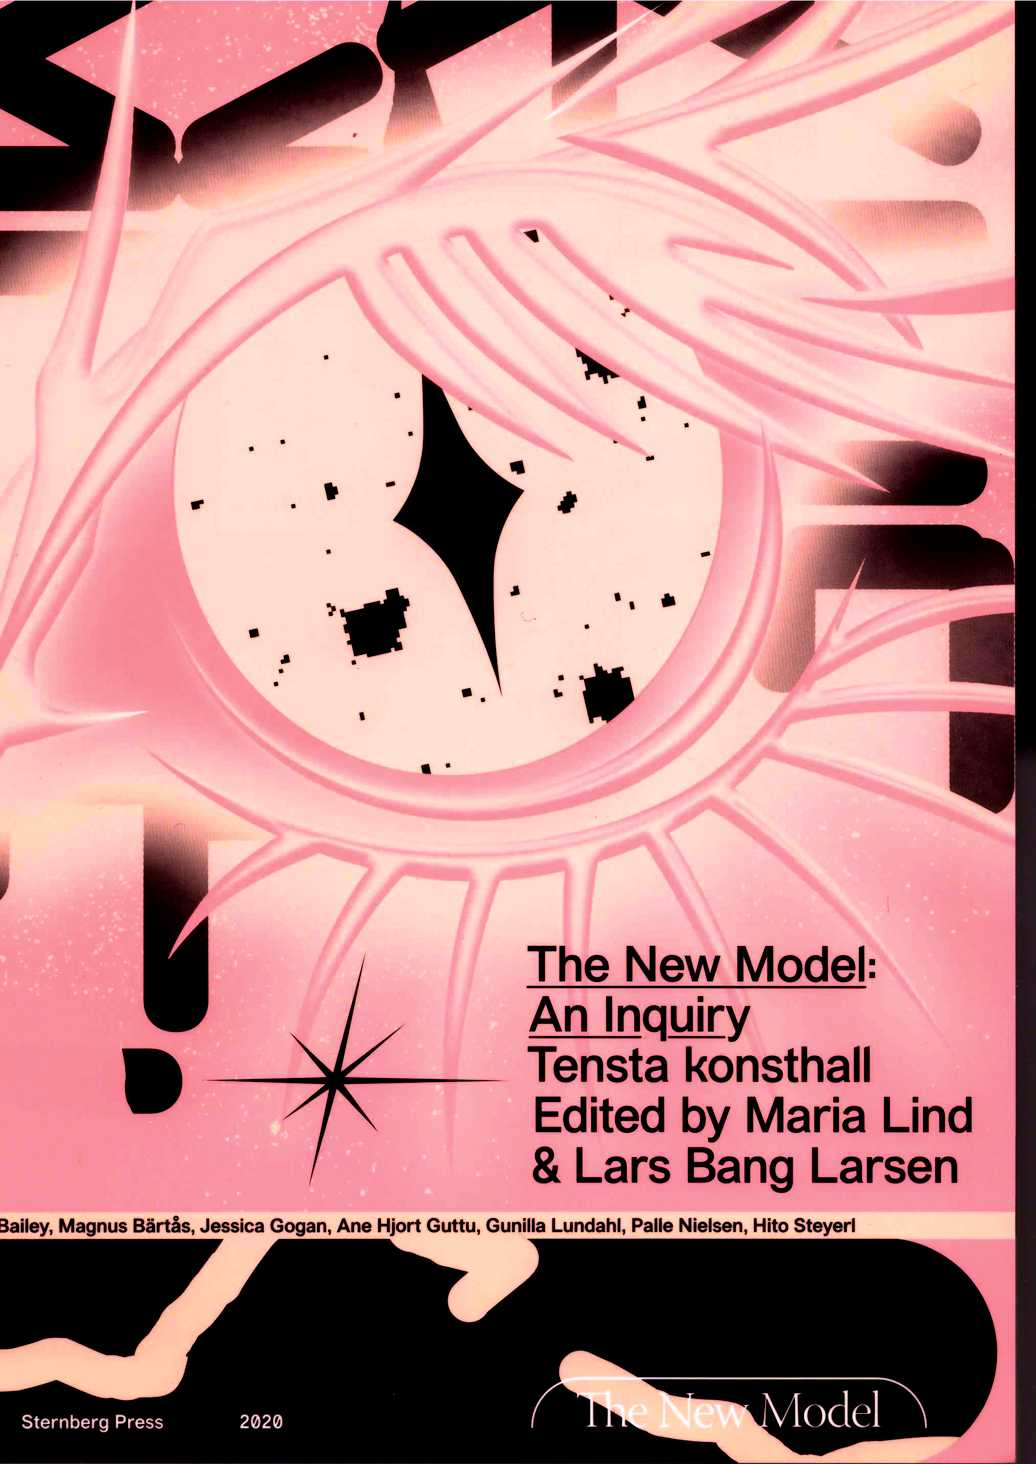 LIND, Maria: BANG LARSEN, Lars (eds.) - The New Model: An Inquiry